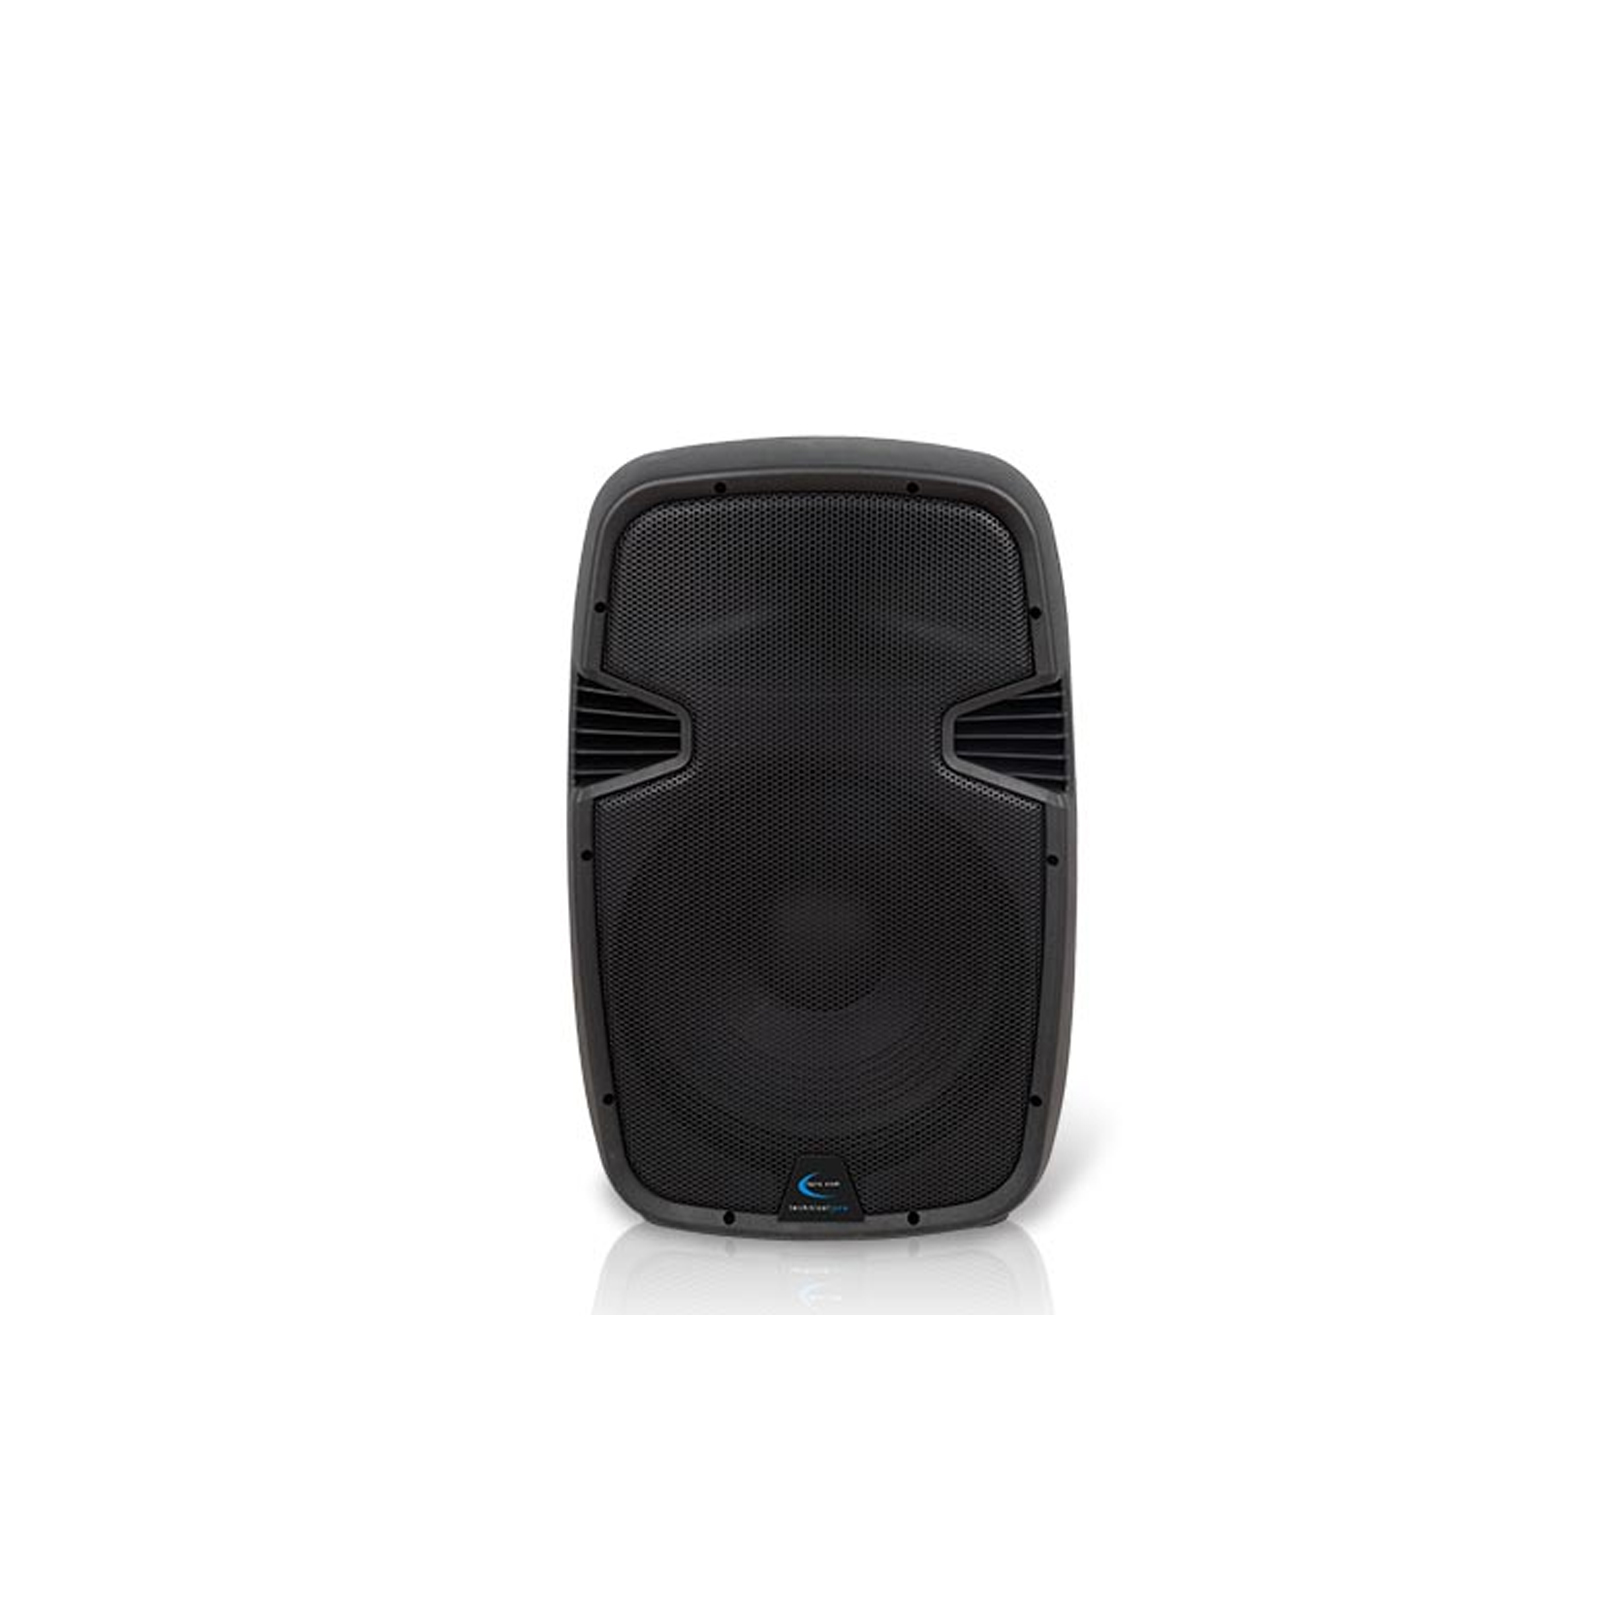 "ABS molded 12"" Two way Active Loudspeaker with USB / SD Card Inputs & Built in Video Monitor"